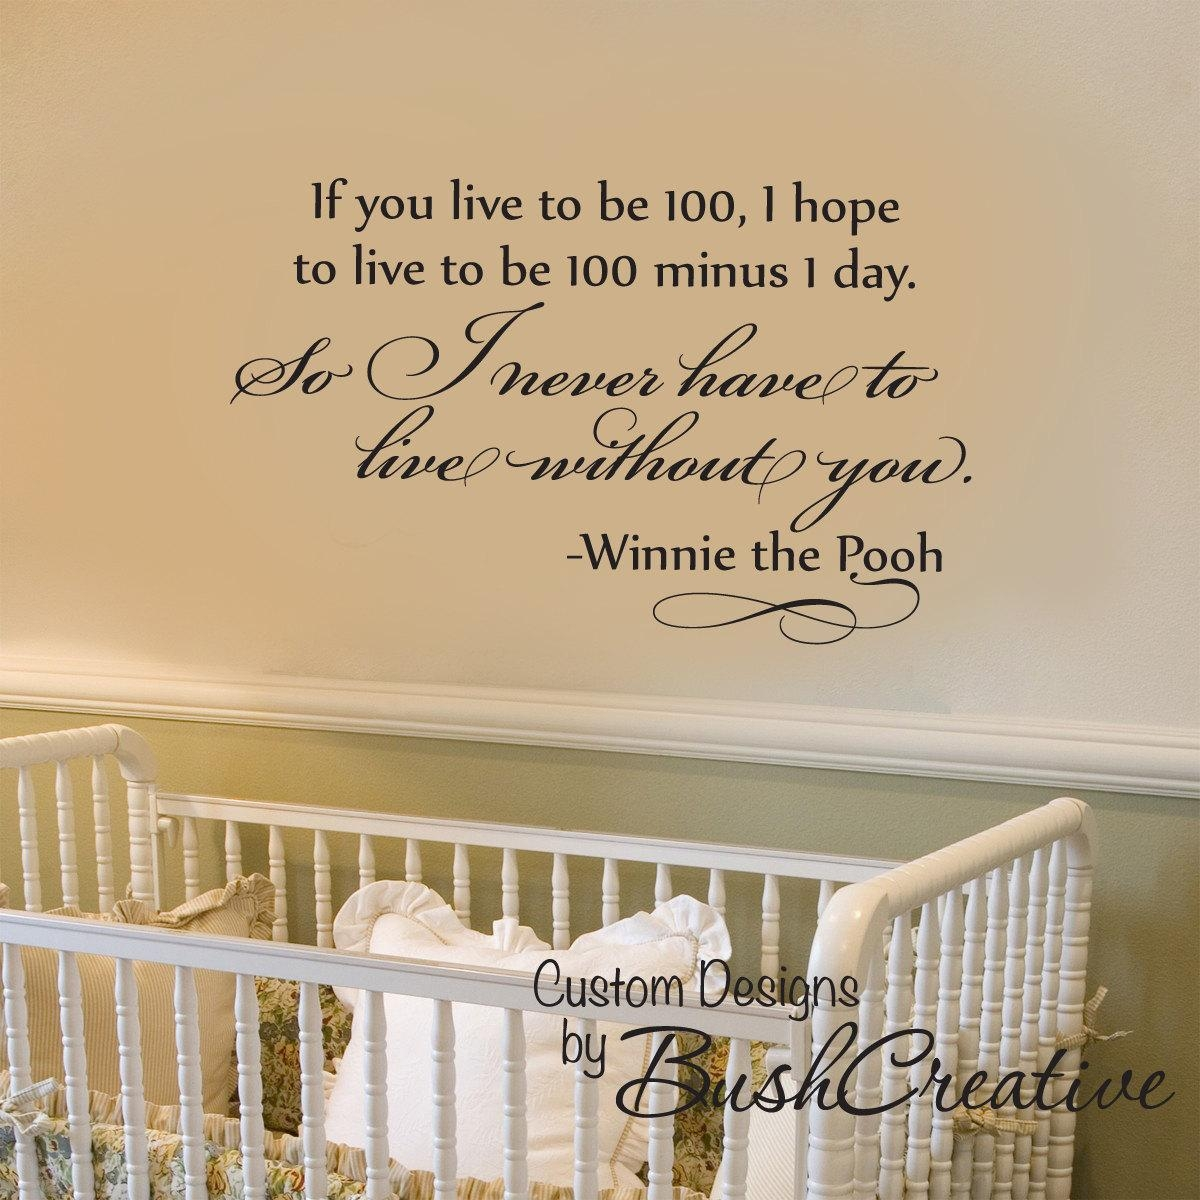 Classic Winnie The Pooh Baby Room Ideas | Design Ideas & Decors Inside Winnie The Pooh Nursery Quotes Wall Art (Image 5 of 20)